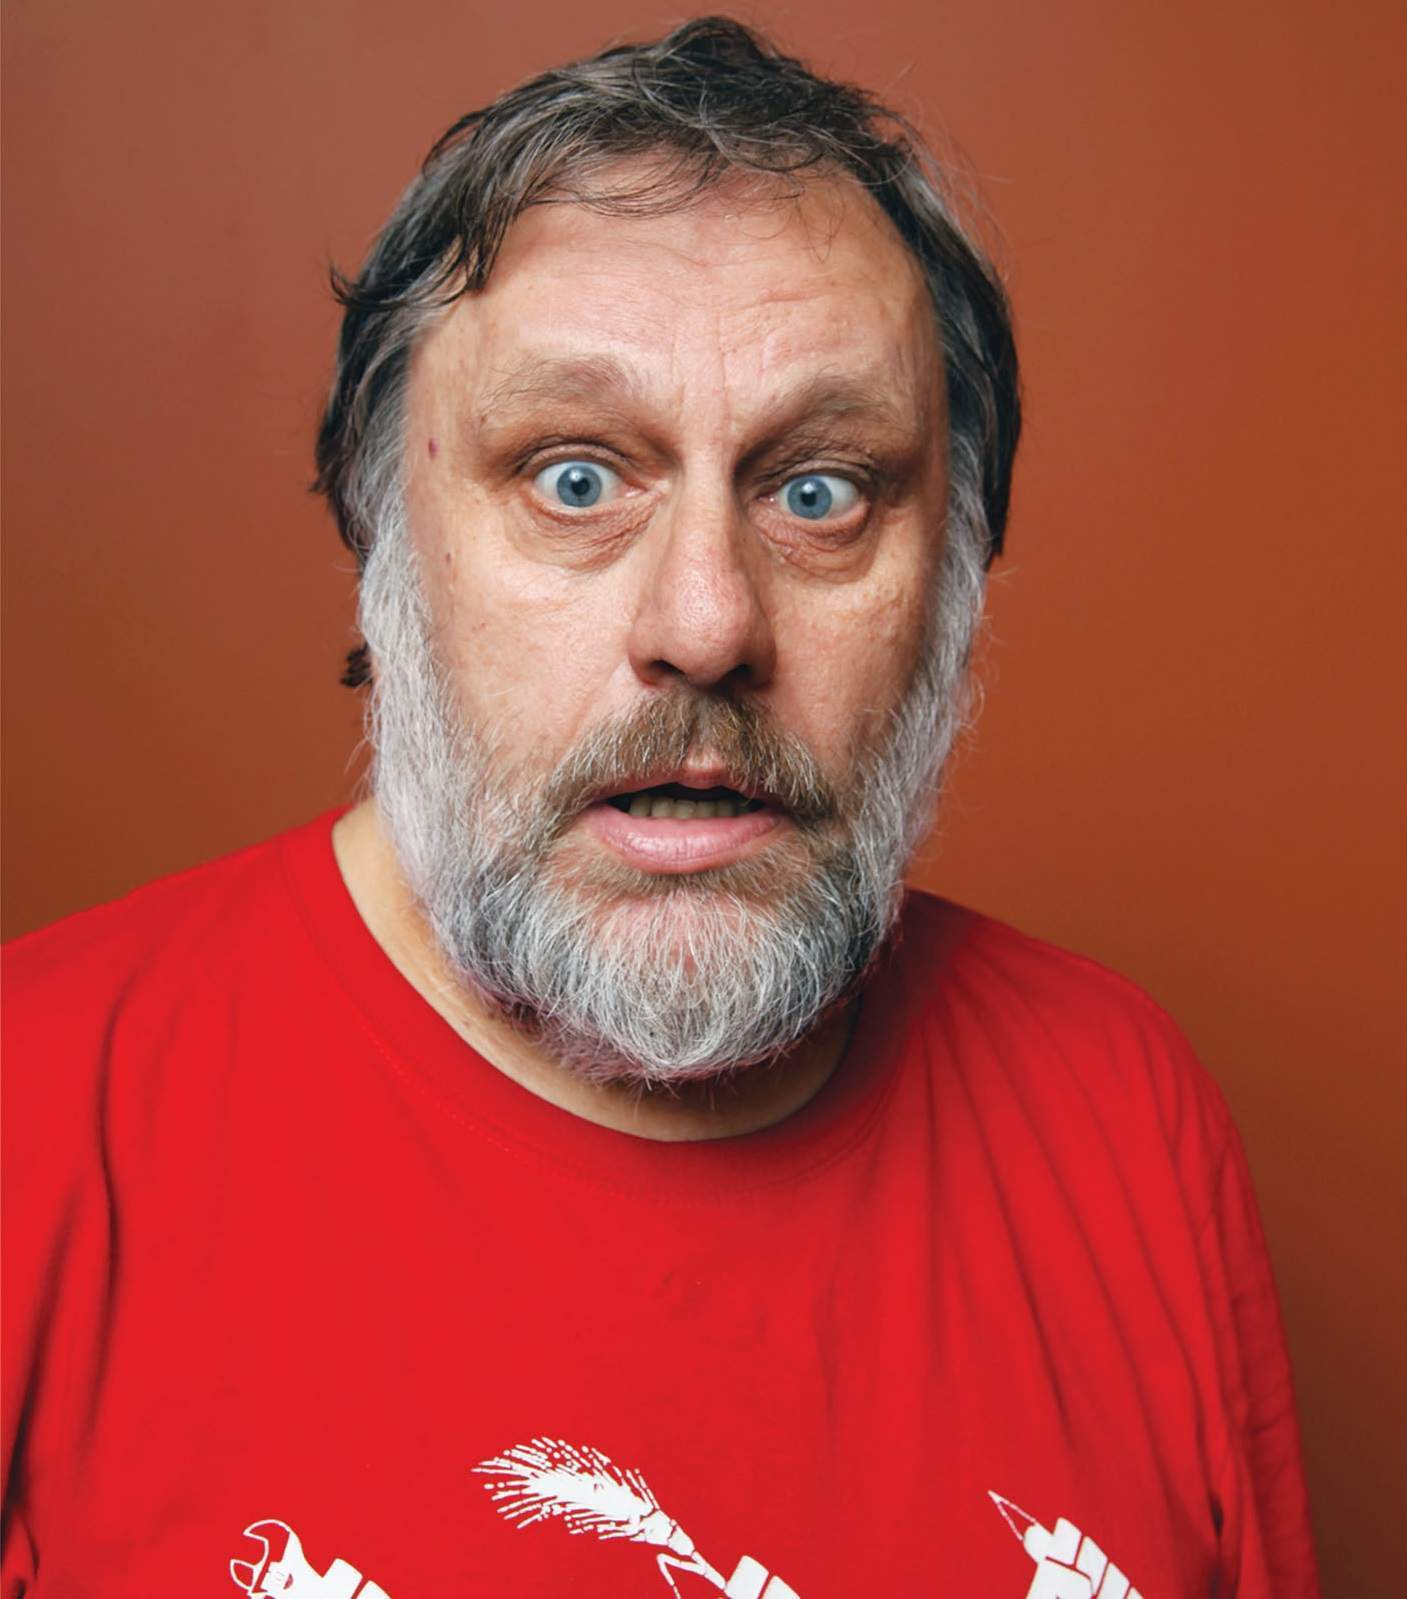 Worst of all worlds: late capitalist materialism and the unending cycles of Slavoj Žižek